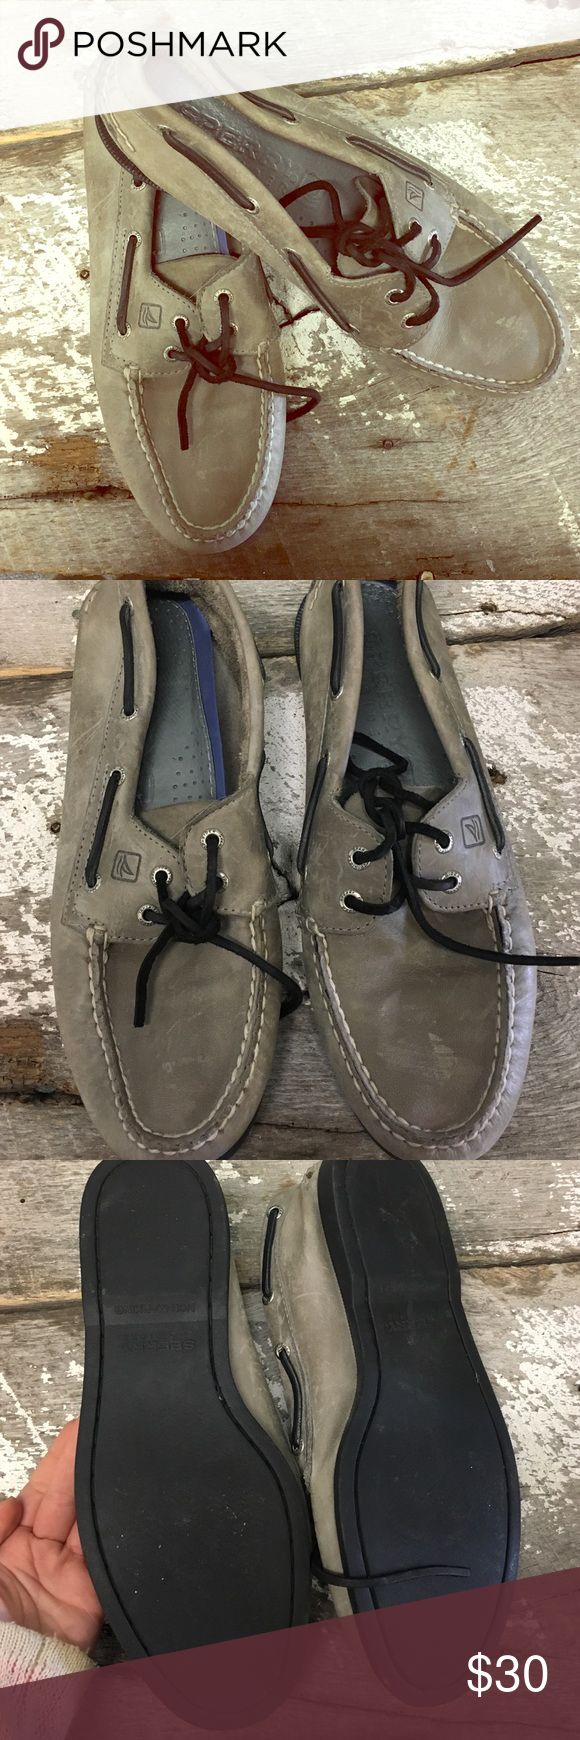 Men's Sperry Top-Sider, Size 9.5 Sperry Top-Sider, Men's 10. Grey leather shoe. Black leather shoe strings. Black rubber outsole. Sperry Top-Sider Shoes Flats & Loafers